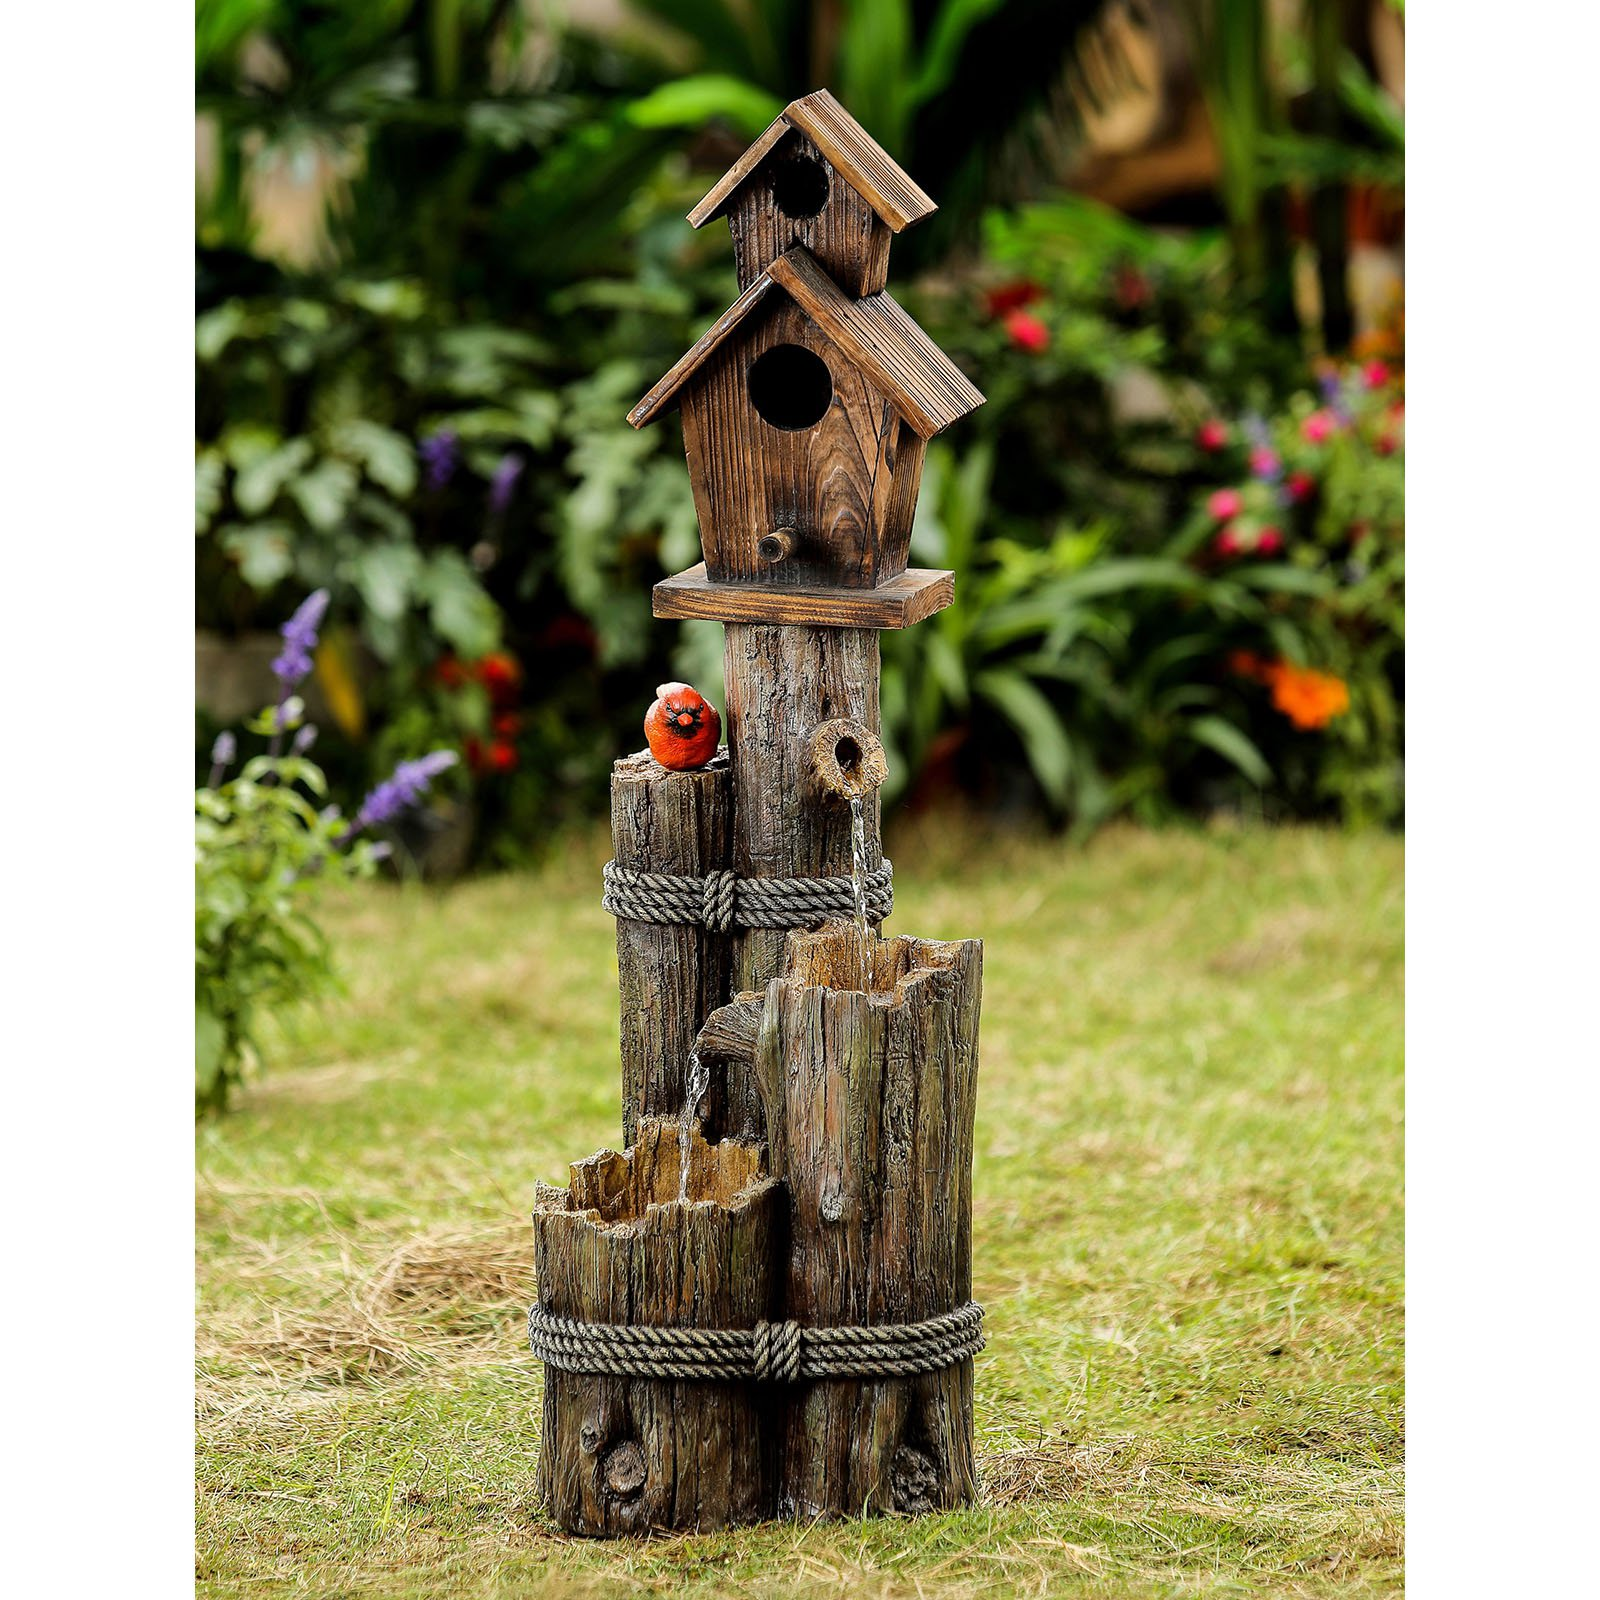 Jeco Tiered Wood Finish Water Fountain with Birdhouse by Bird Houses